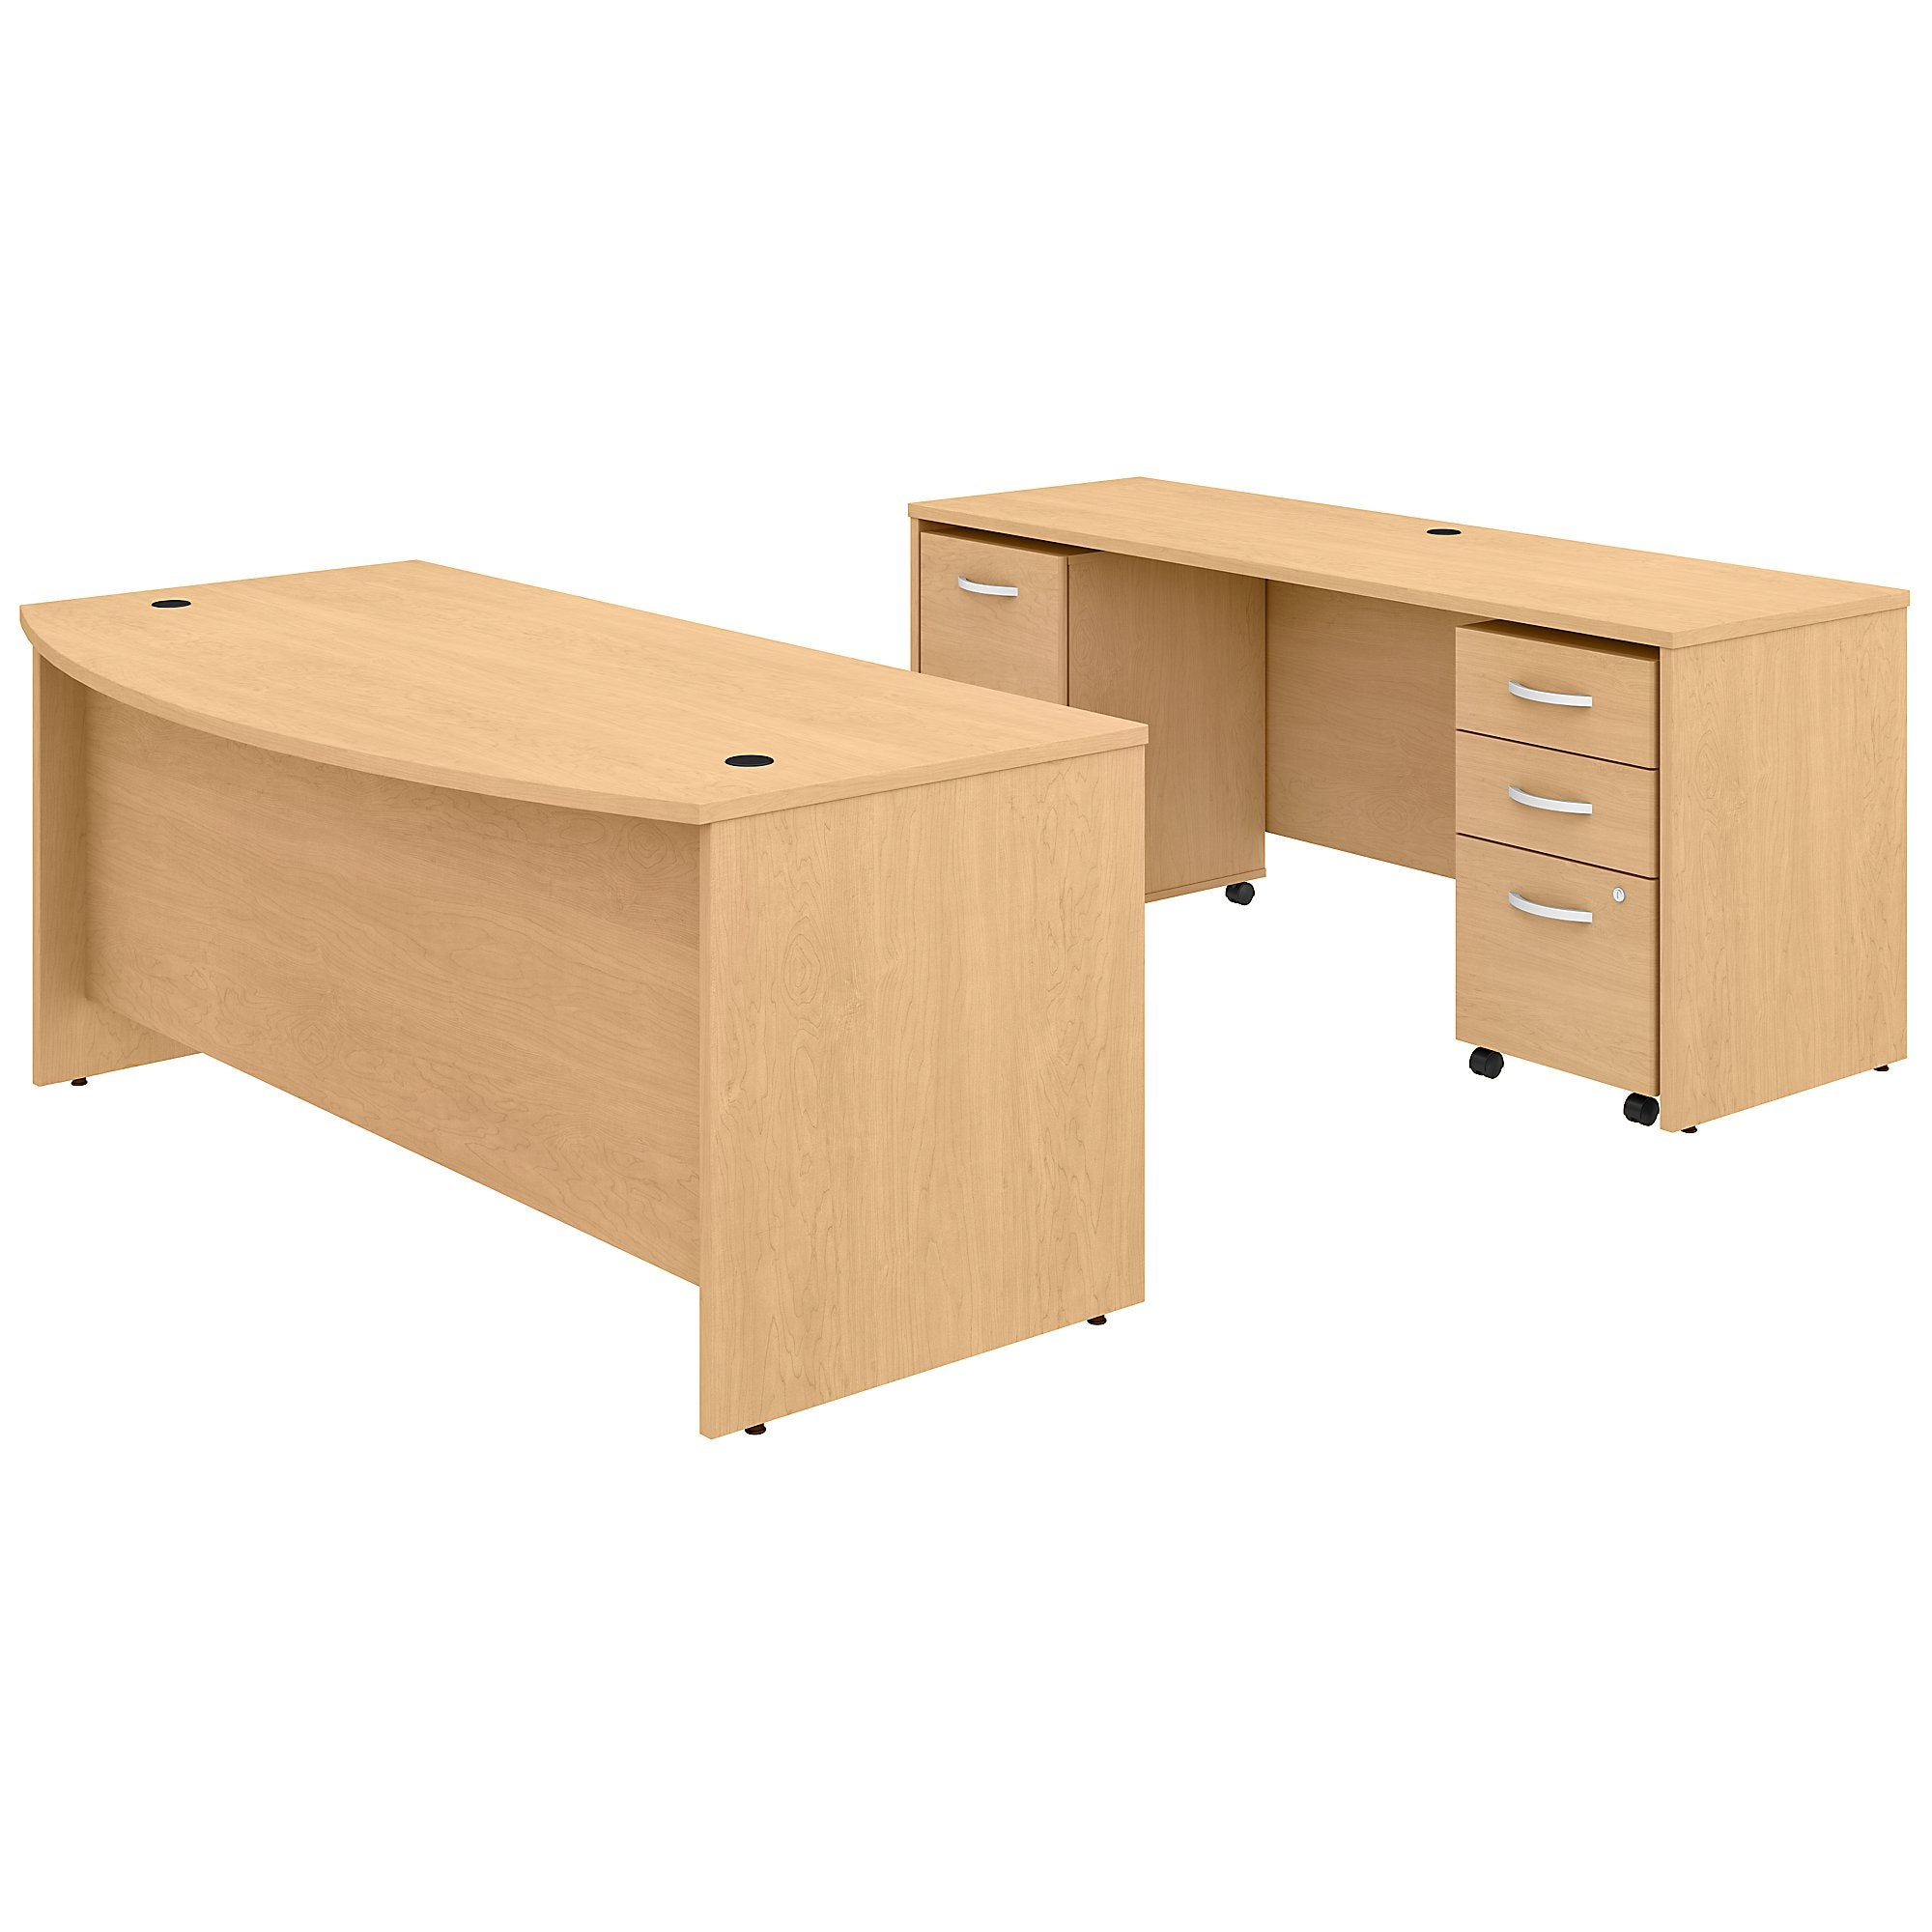 Studio C 72W x 36D Bow Front Desk & Credenza with Mobile File Cabinets